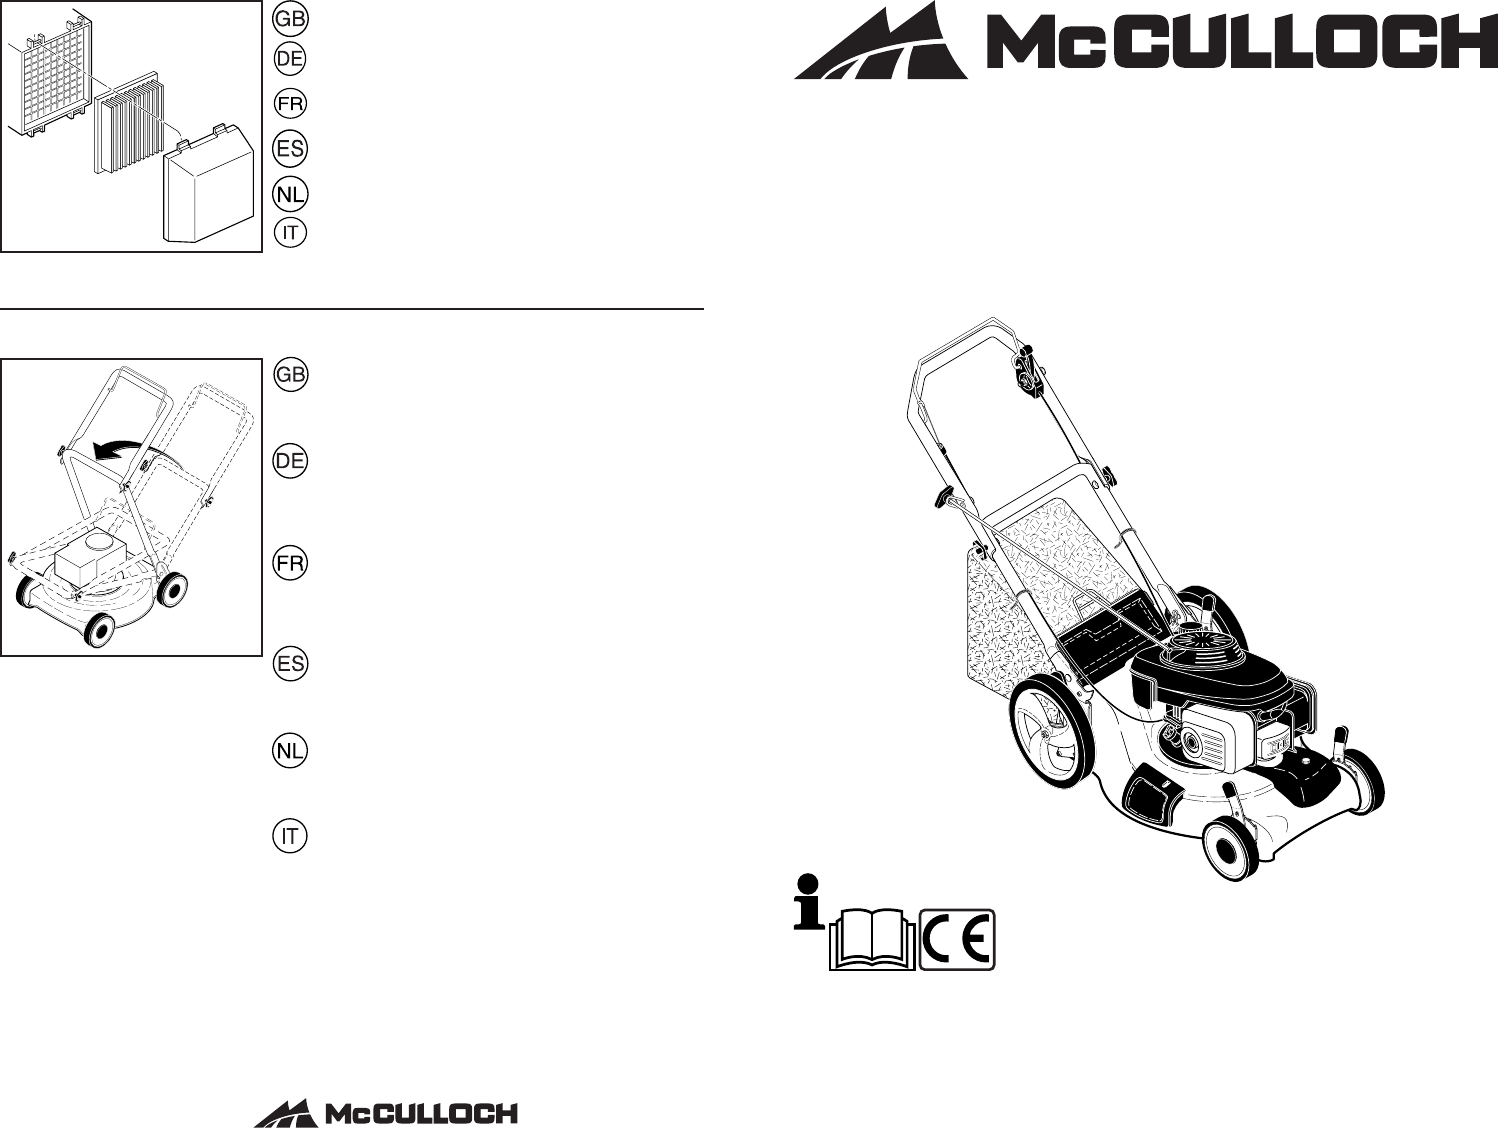 Mcculloch M5553D Users Manual OM, McCulloch, M5553 D